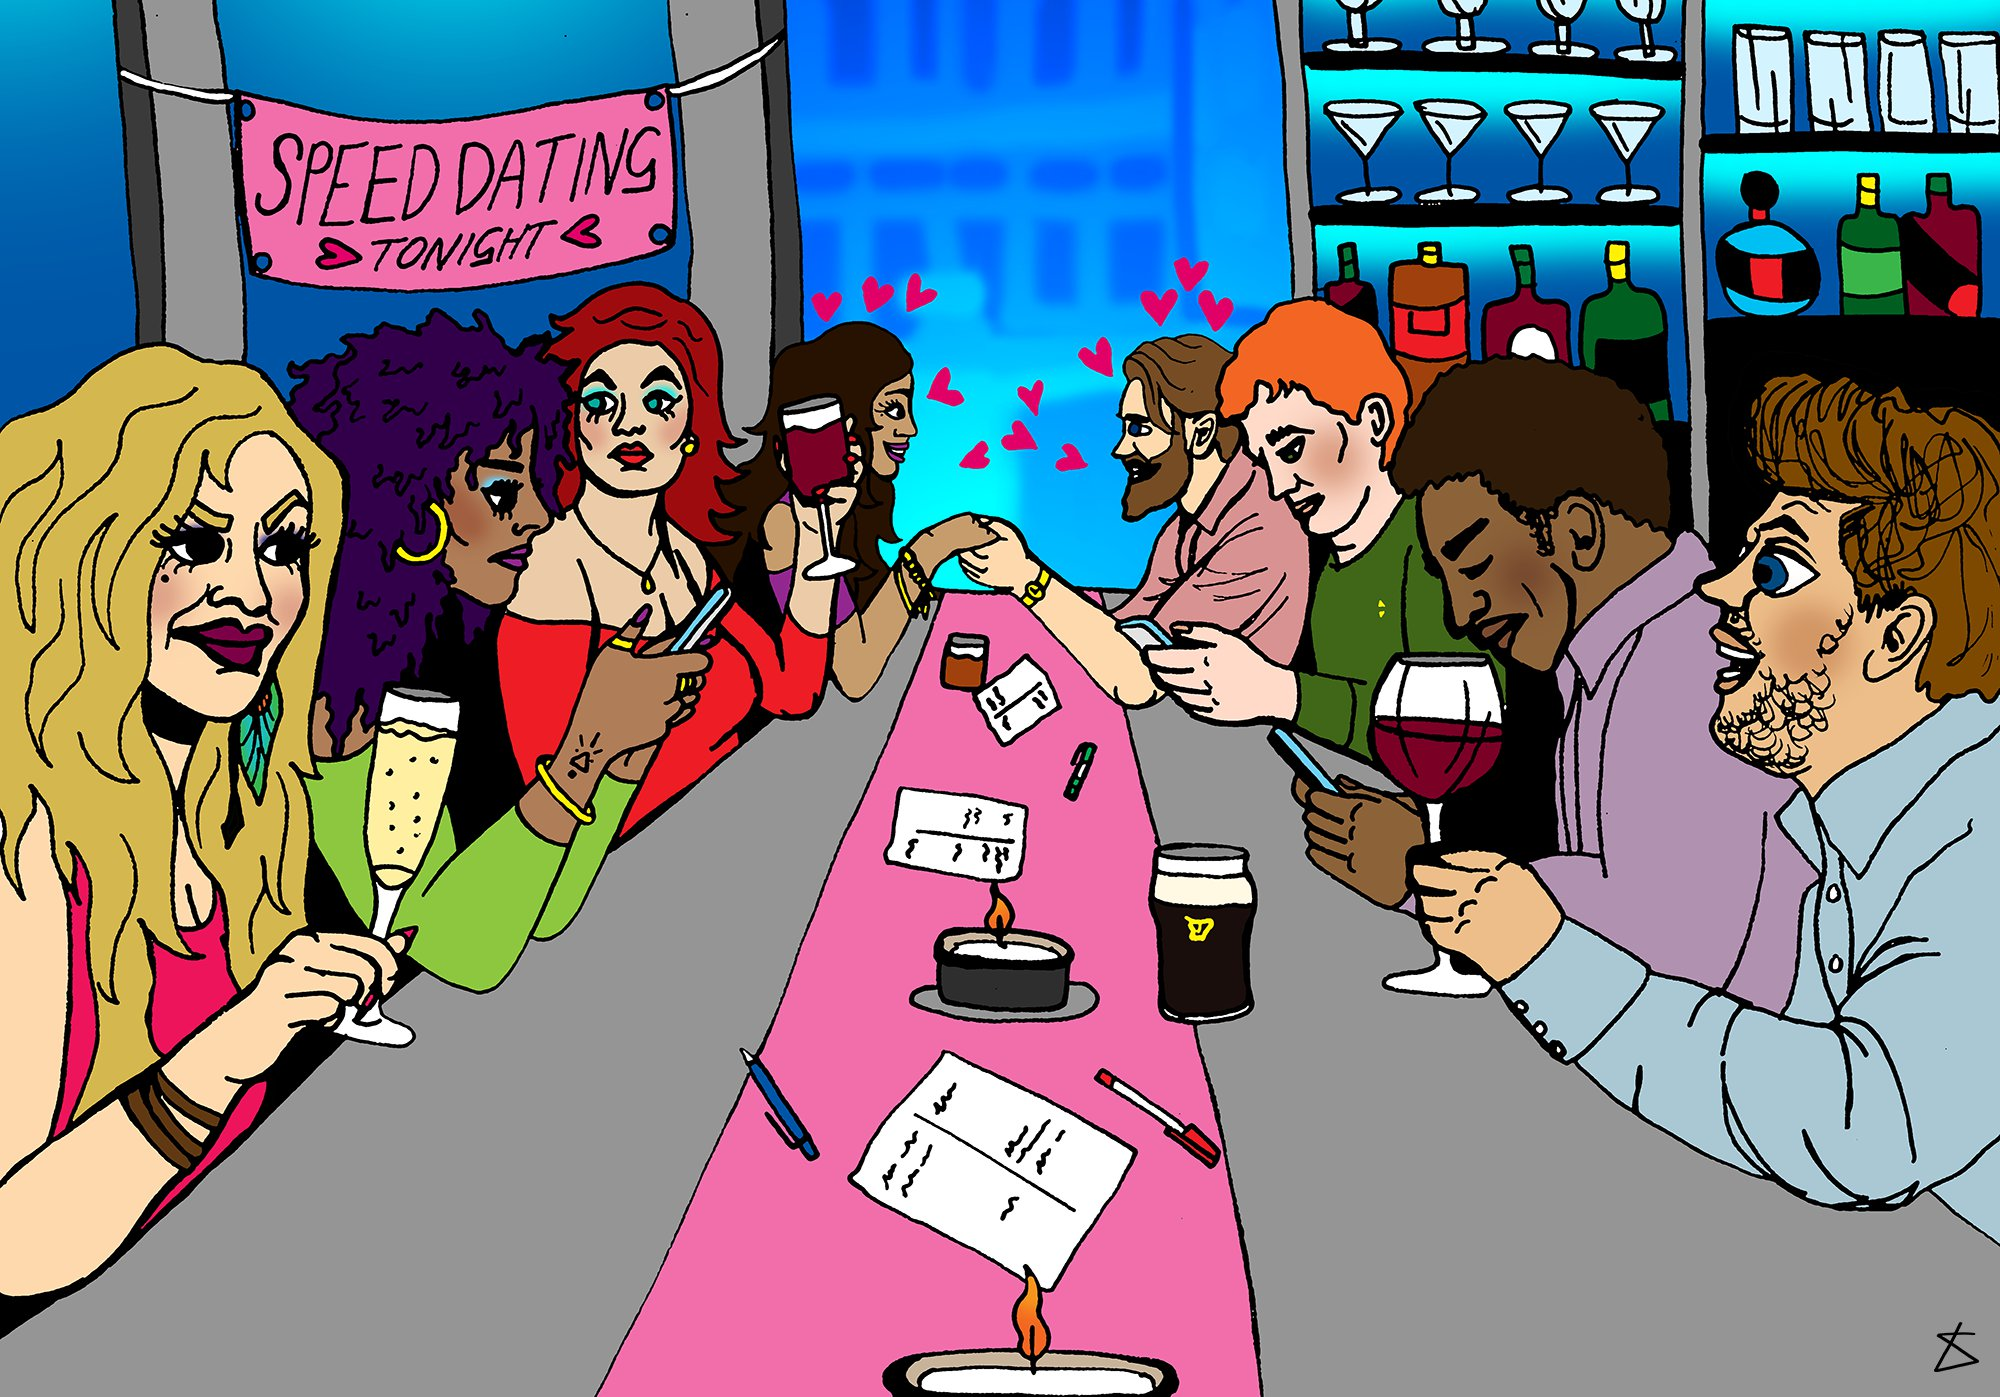 People reveal their worst speed dating stories (Almara) Picture: Liberty Antonia Sadle